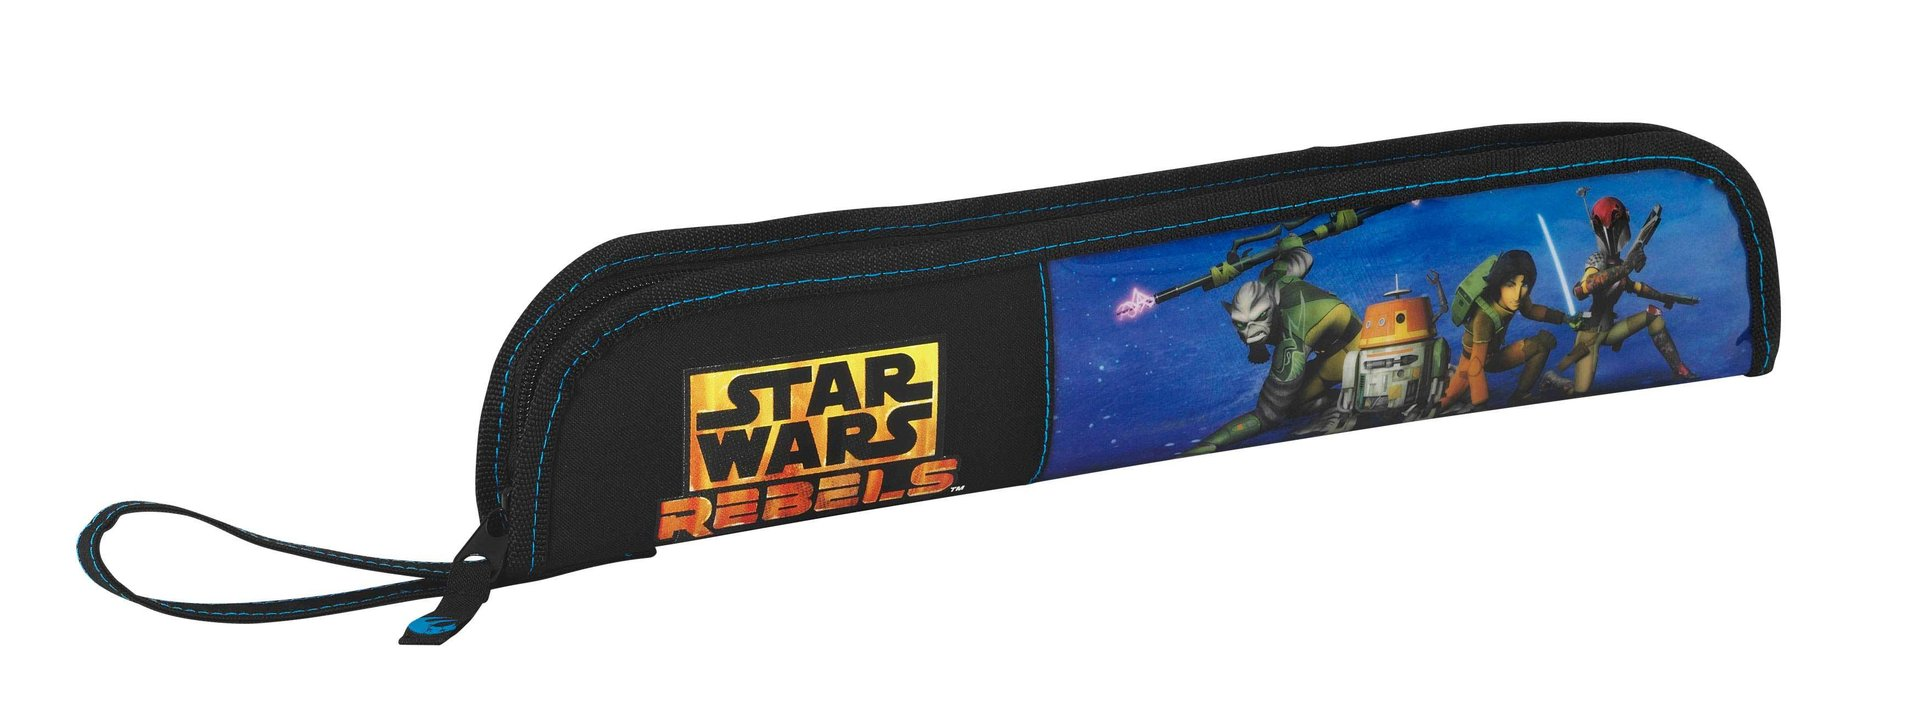 PORTAFLAUTAS STAR WARS REBELS